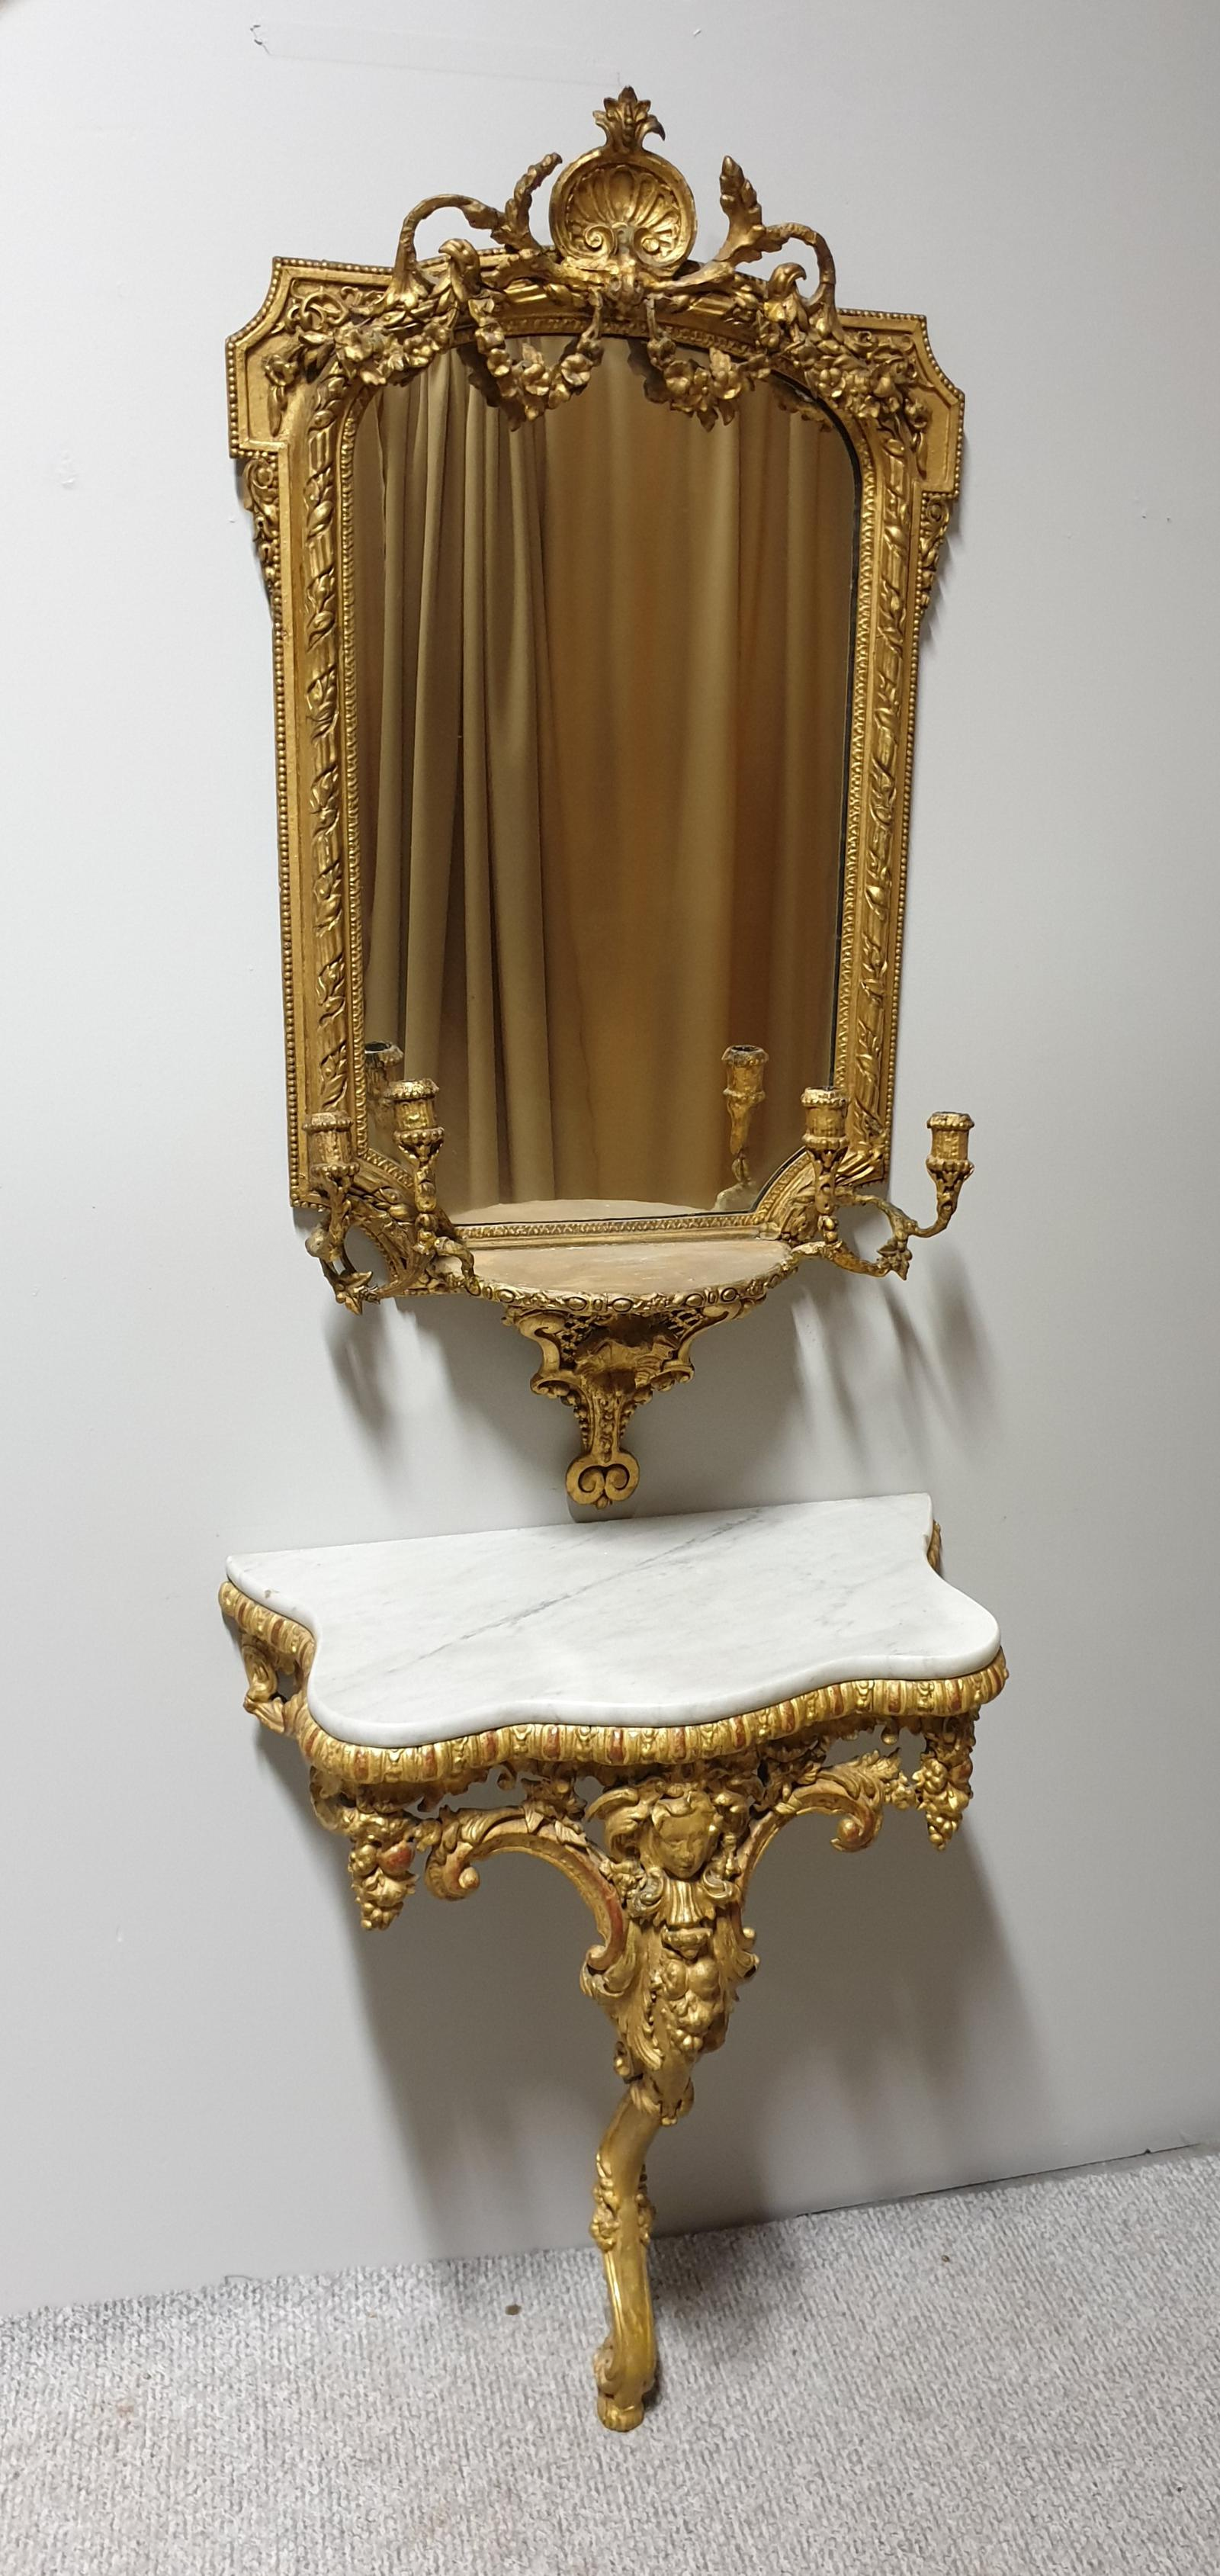 Outstanding 18th Century English Gilt Console Table & Mirror (1 of 1)